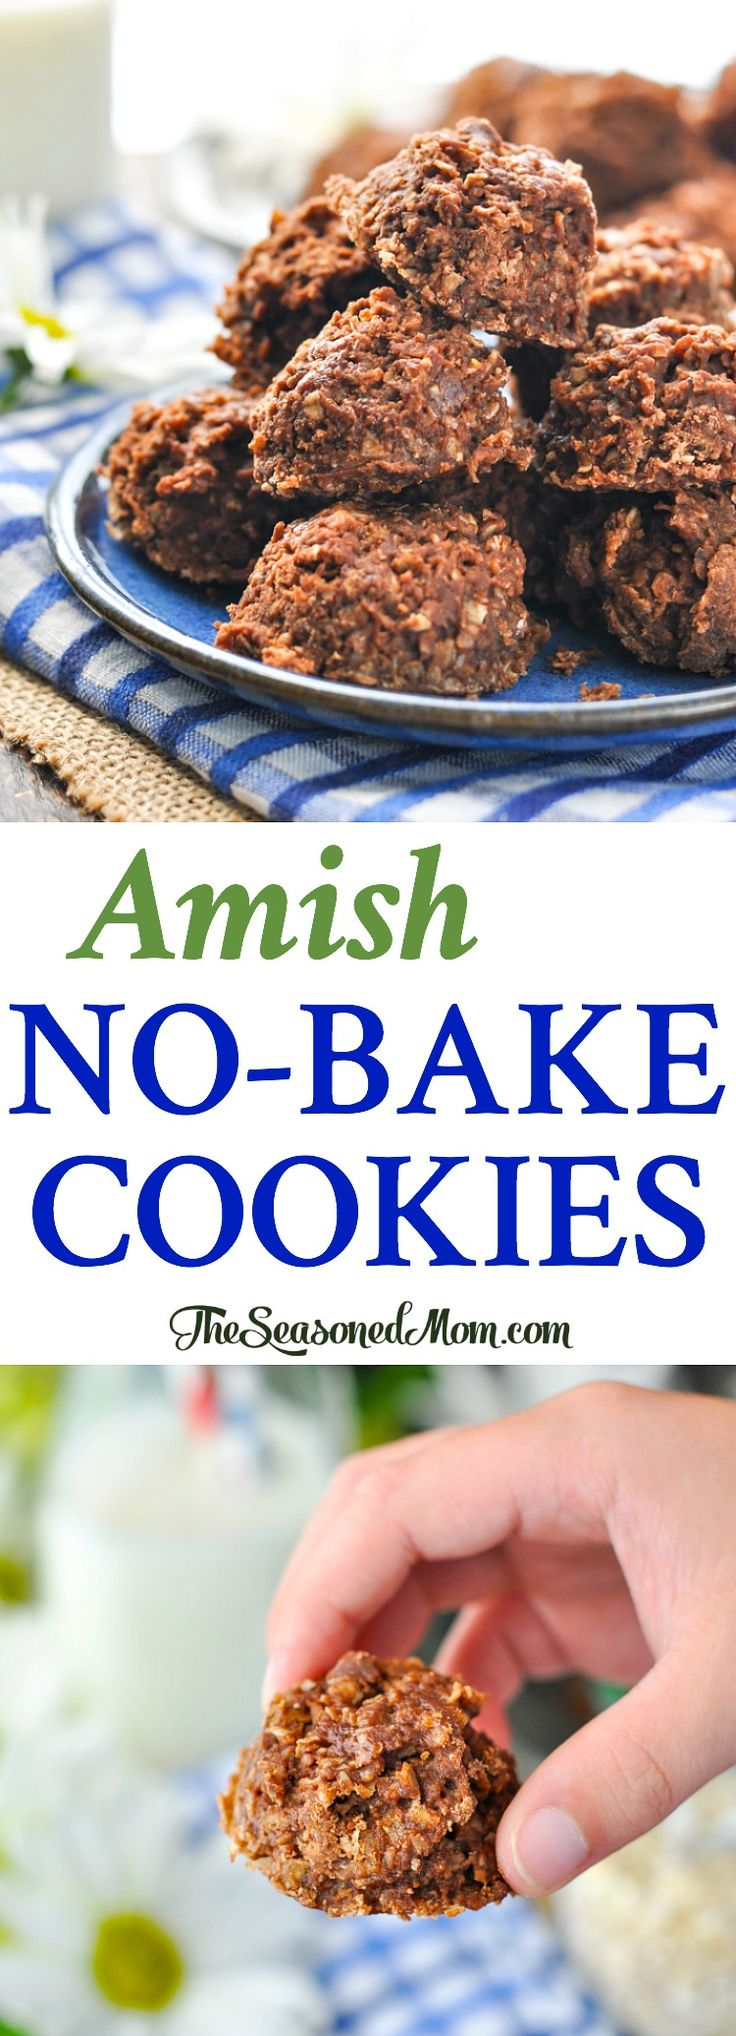 These Amish No Bake Cookies are an easy dessert that kids adore! Chocolate Peanut Butter Cookies | Oatmeal Cookies | Easy Cookie Recipes | Desserts for Parties